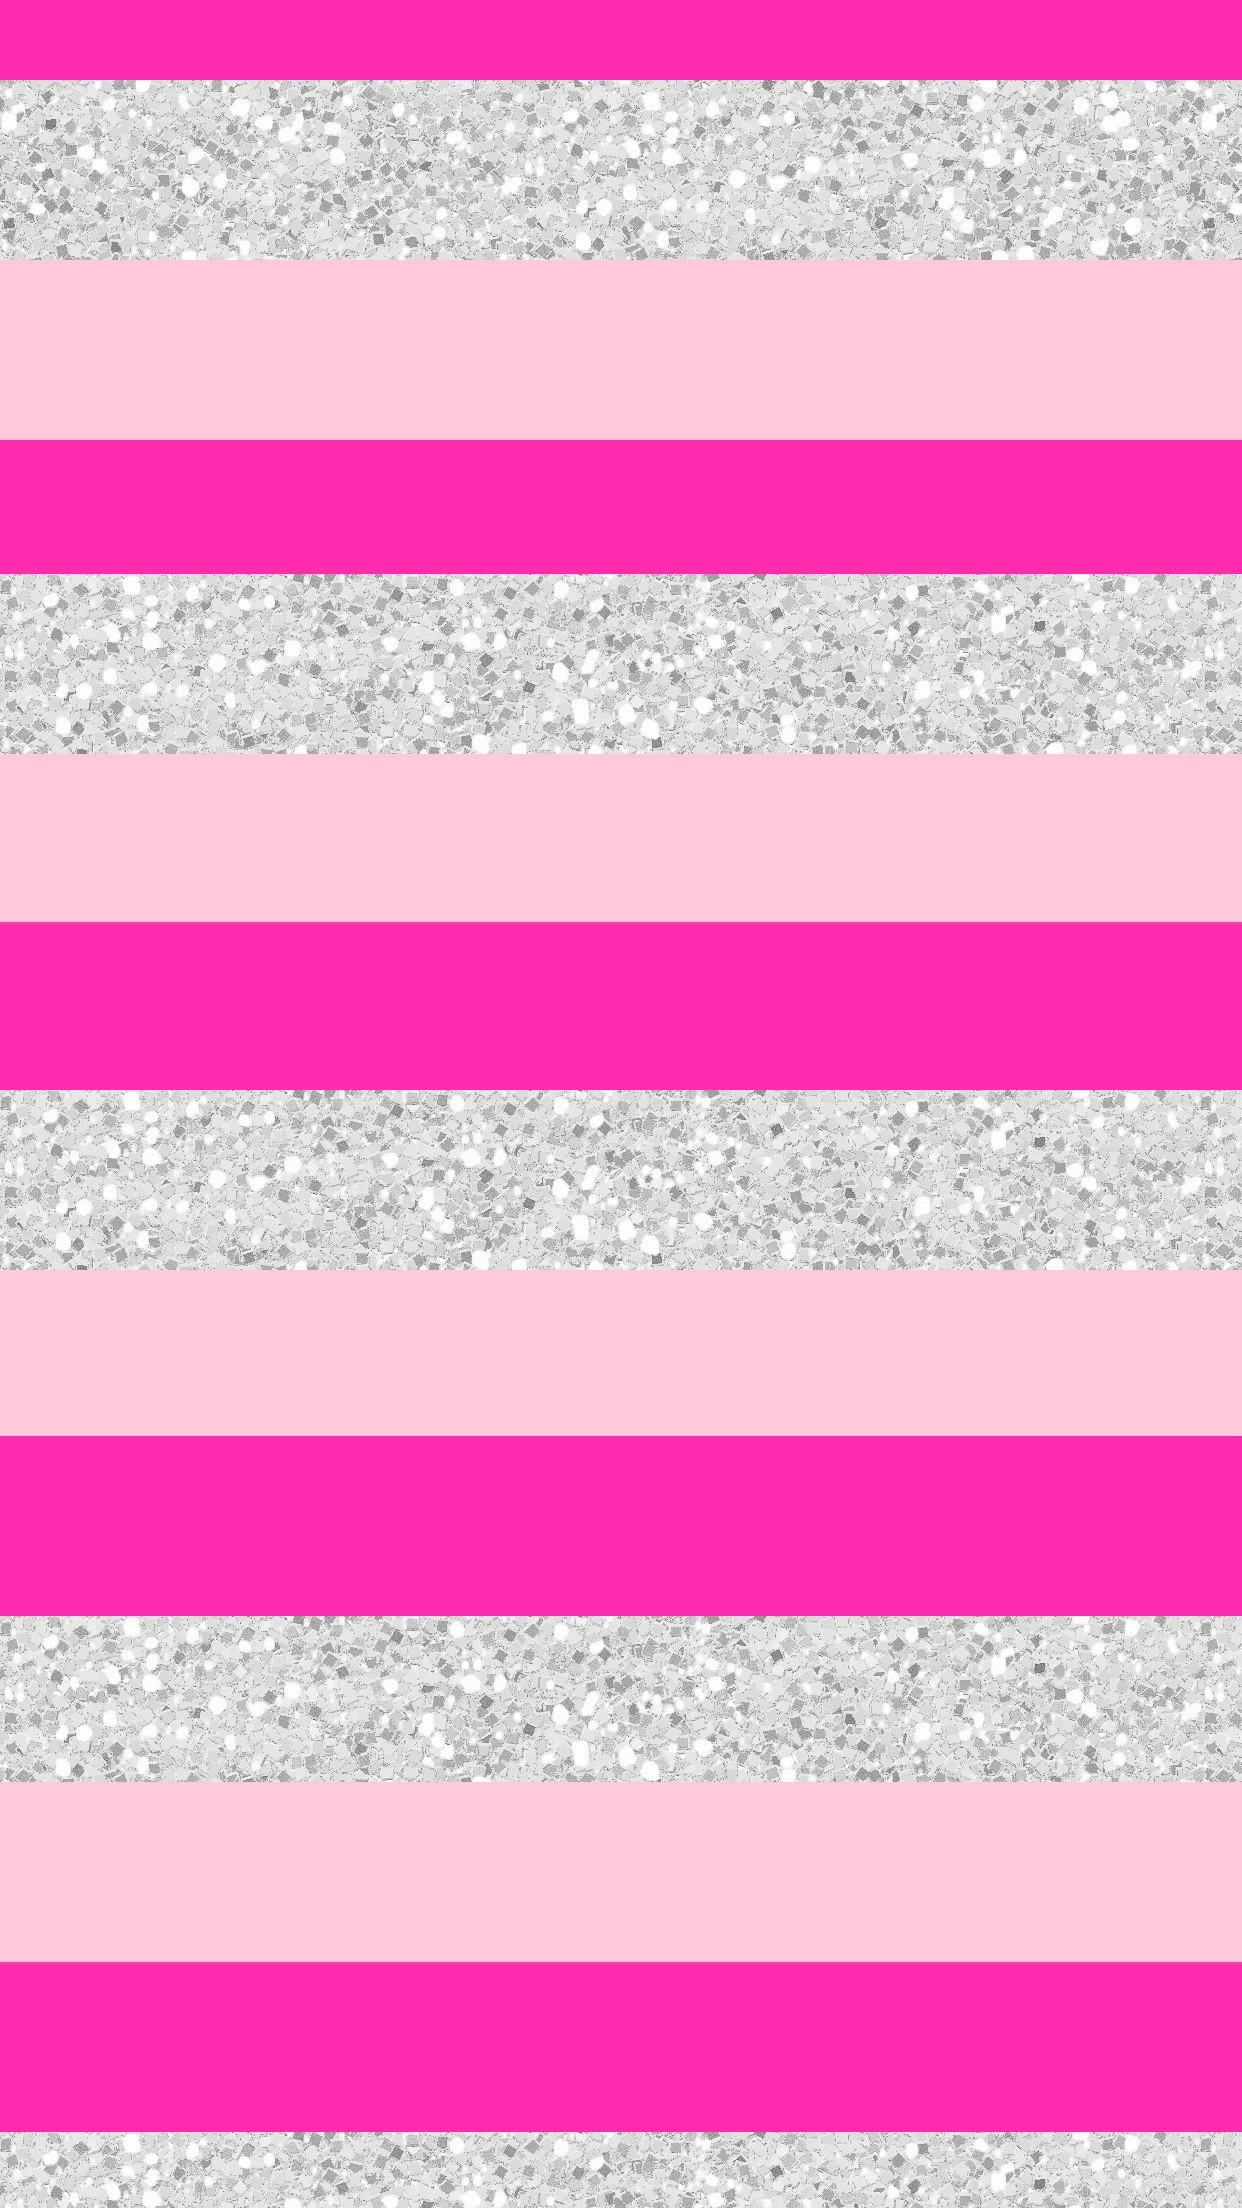 Wallpaper, background, iPhone, Android, HD, pink, silver, glitter,